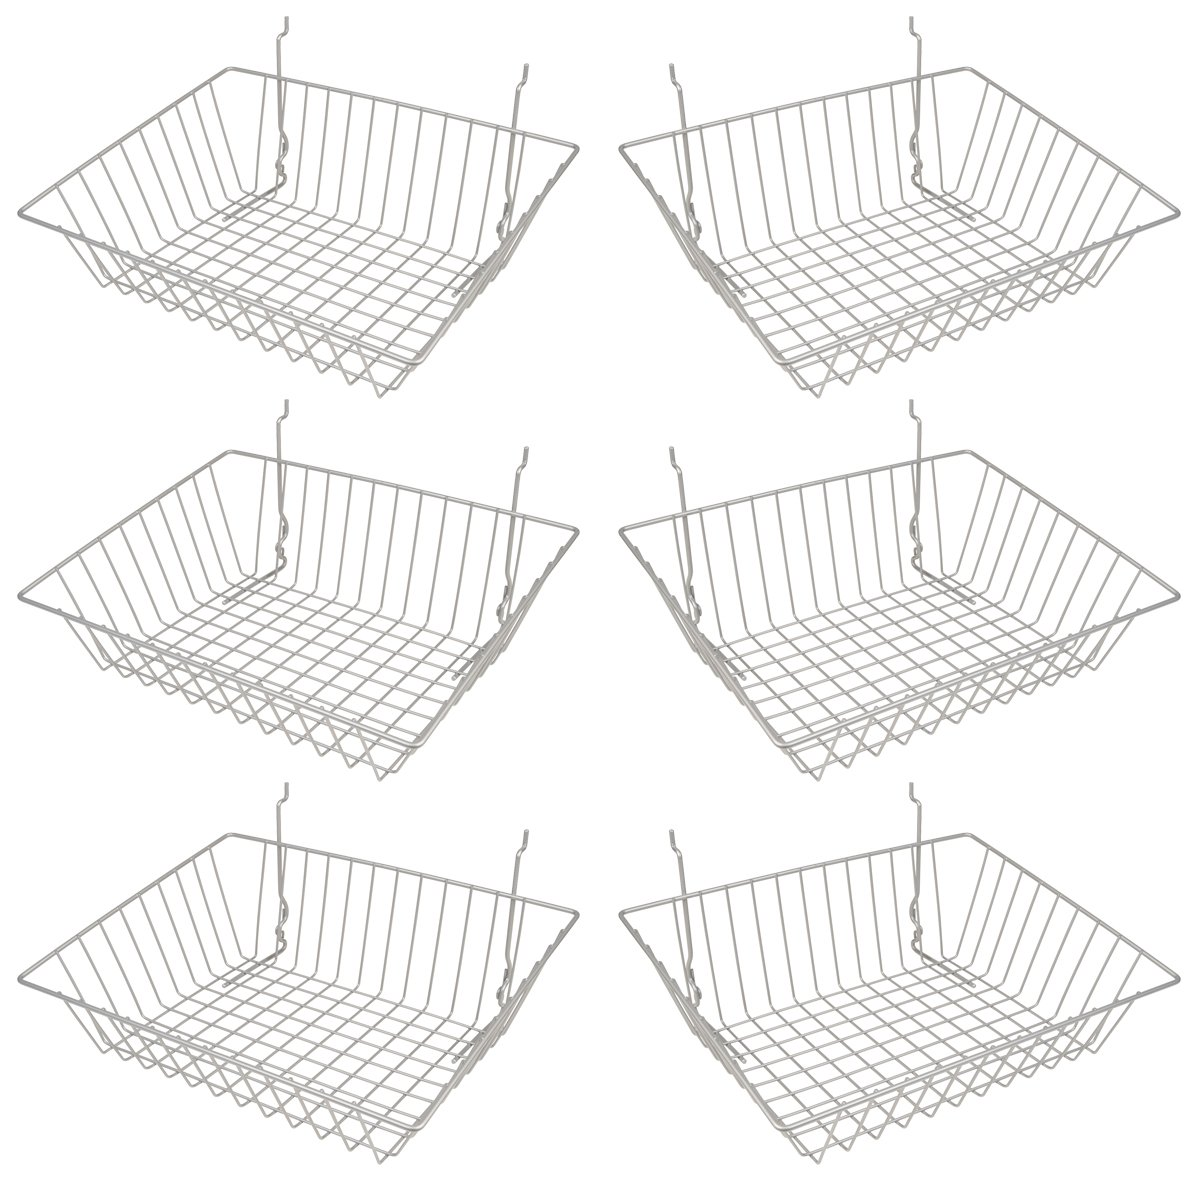 Epoxy Chrome Multi-Fit Sloping Wire Basket for Slatwall,  Pegboard or Gridwall (Set of 6) Metal Semi-Gloss Basket, Epoxy Chrome